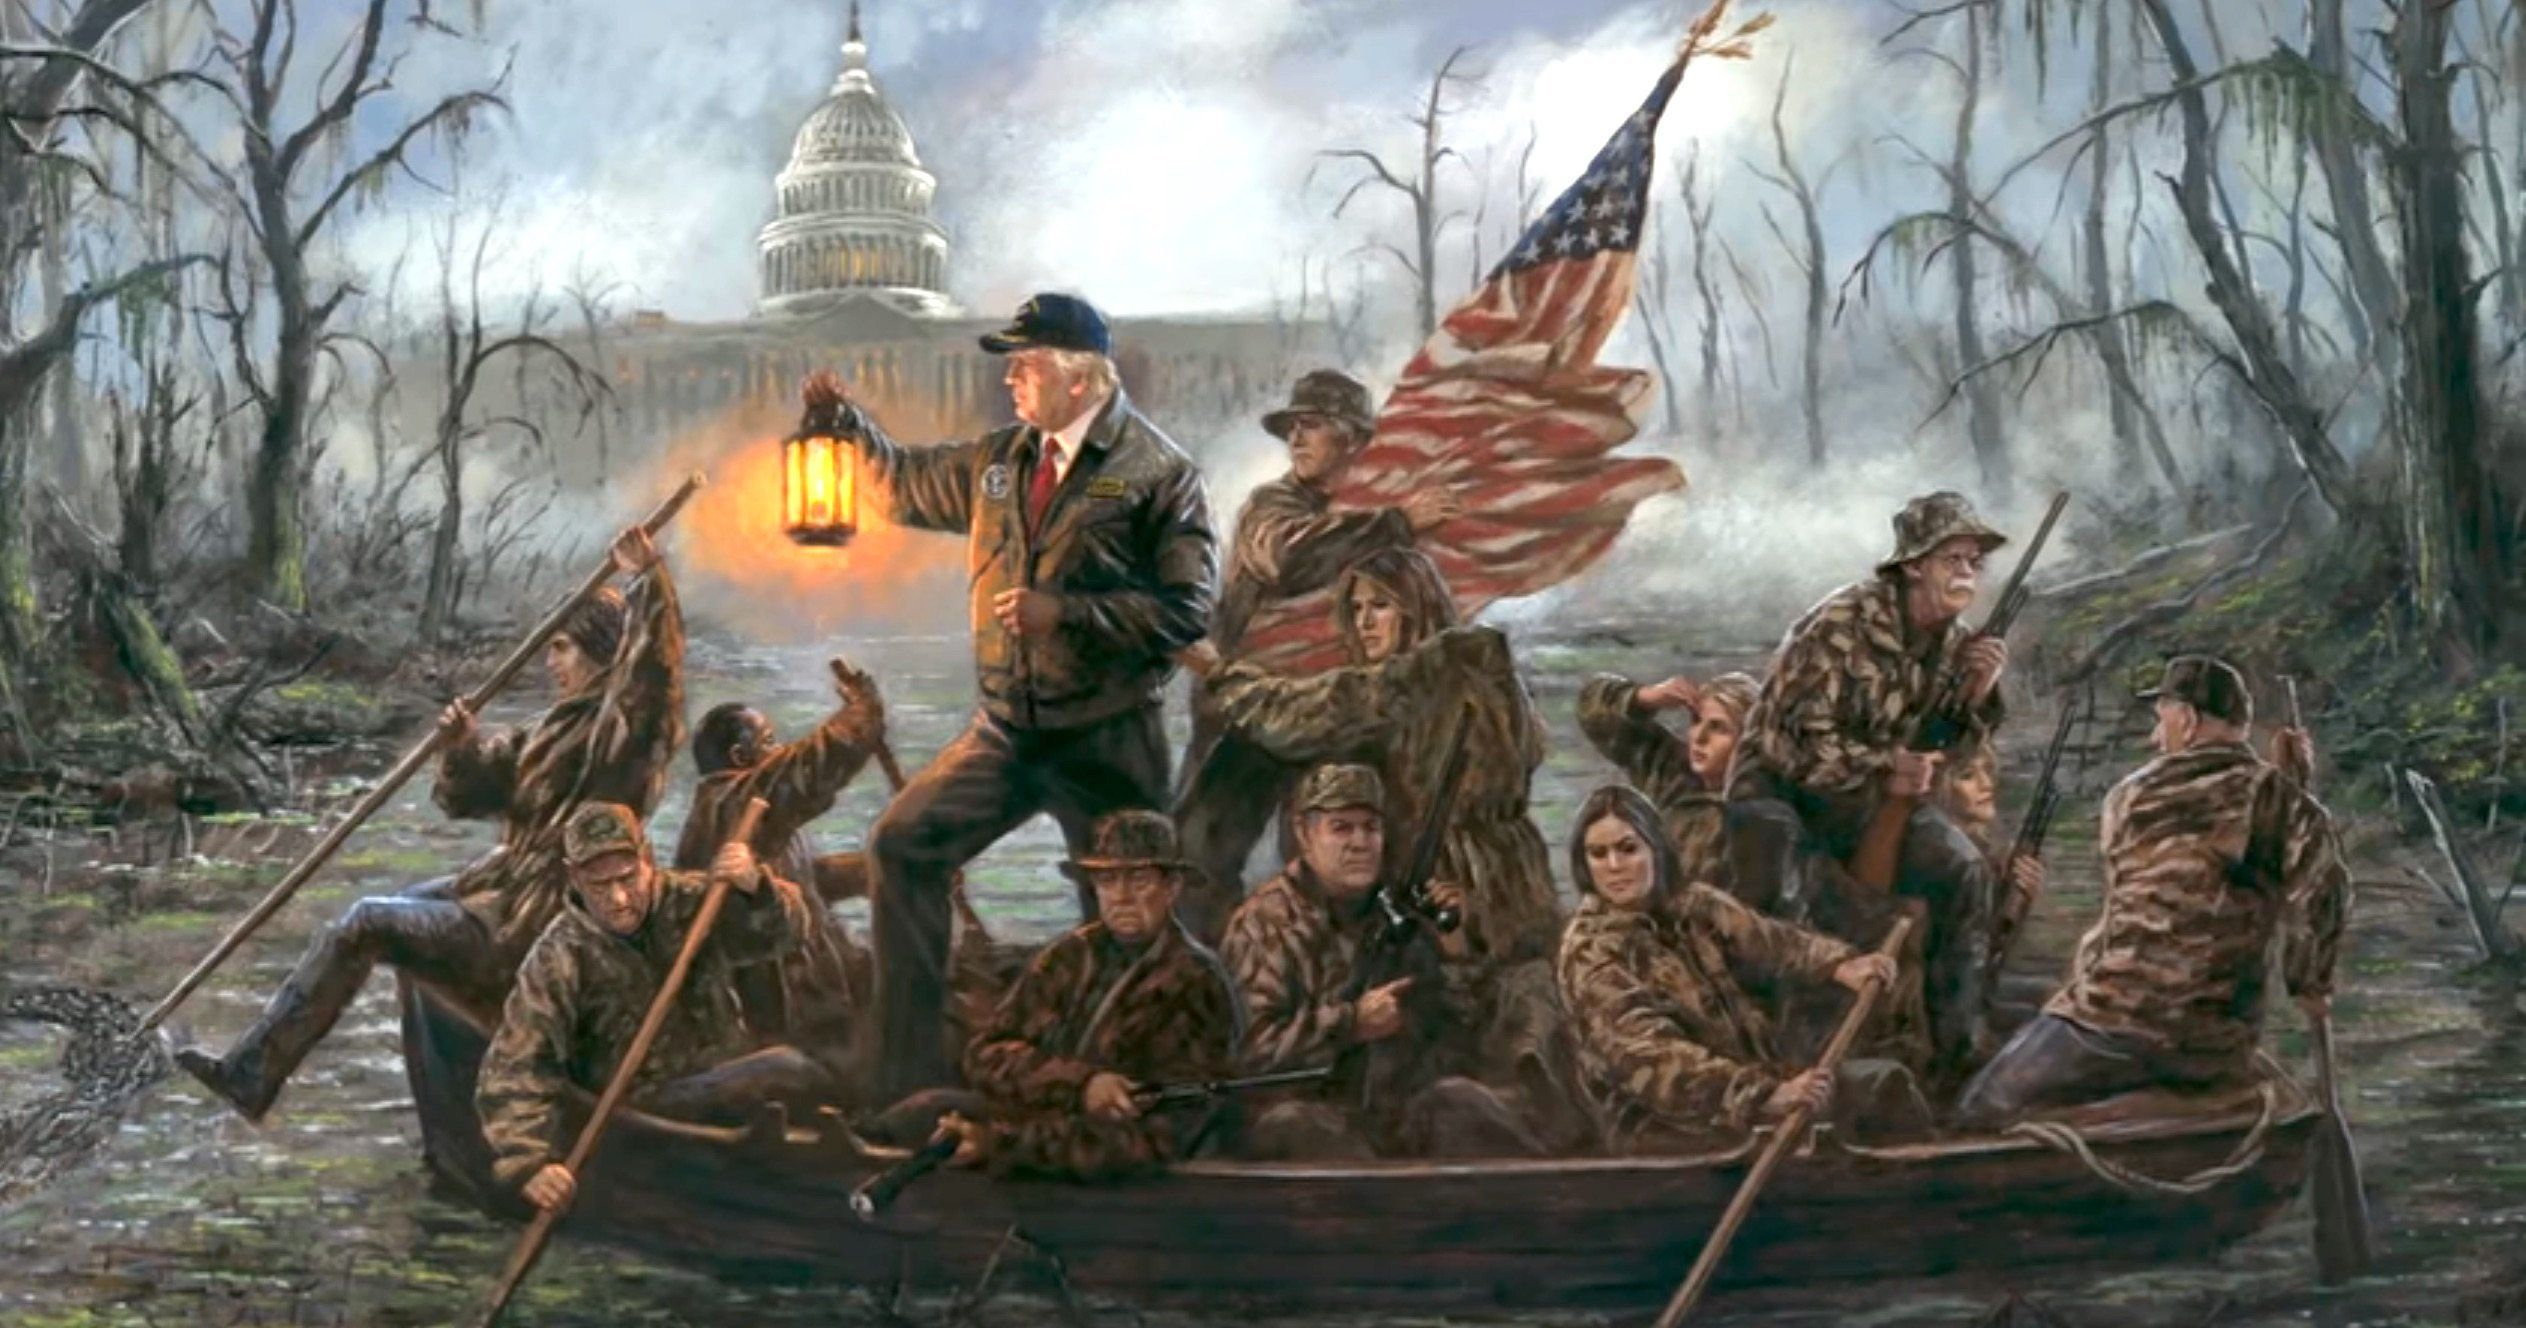 Trump Crossing the Swamp